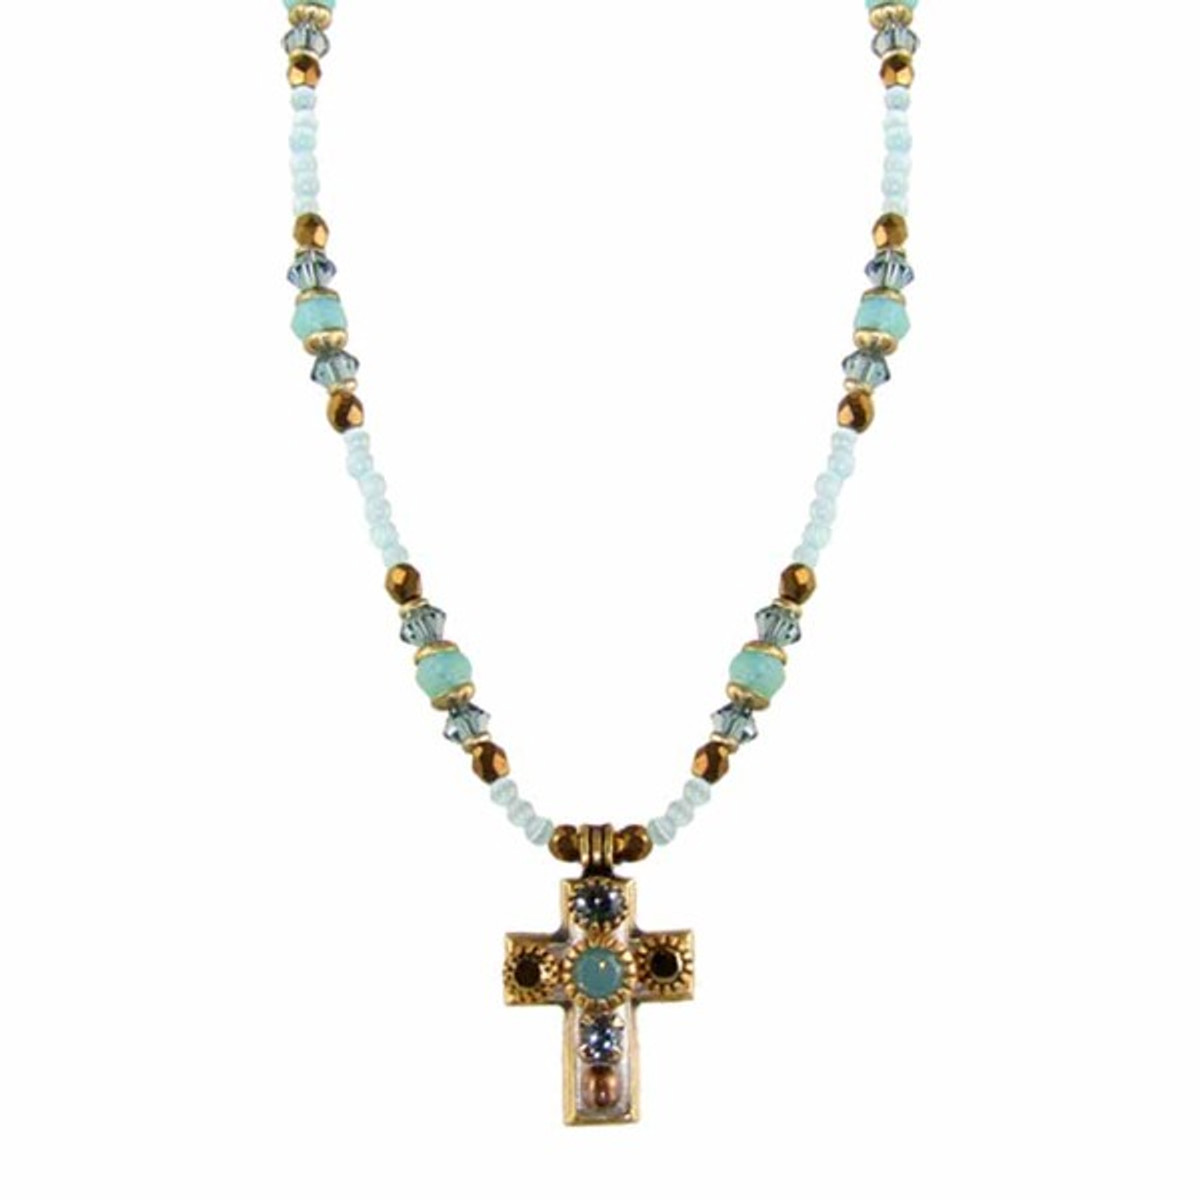 Light Blue and Gold Cross Necklace